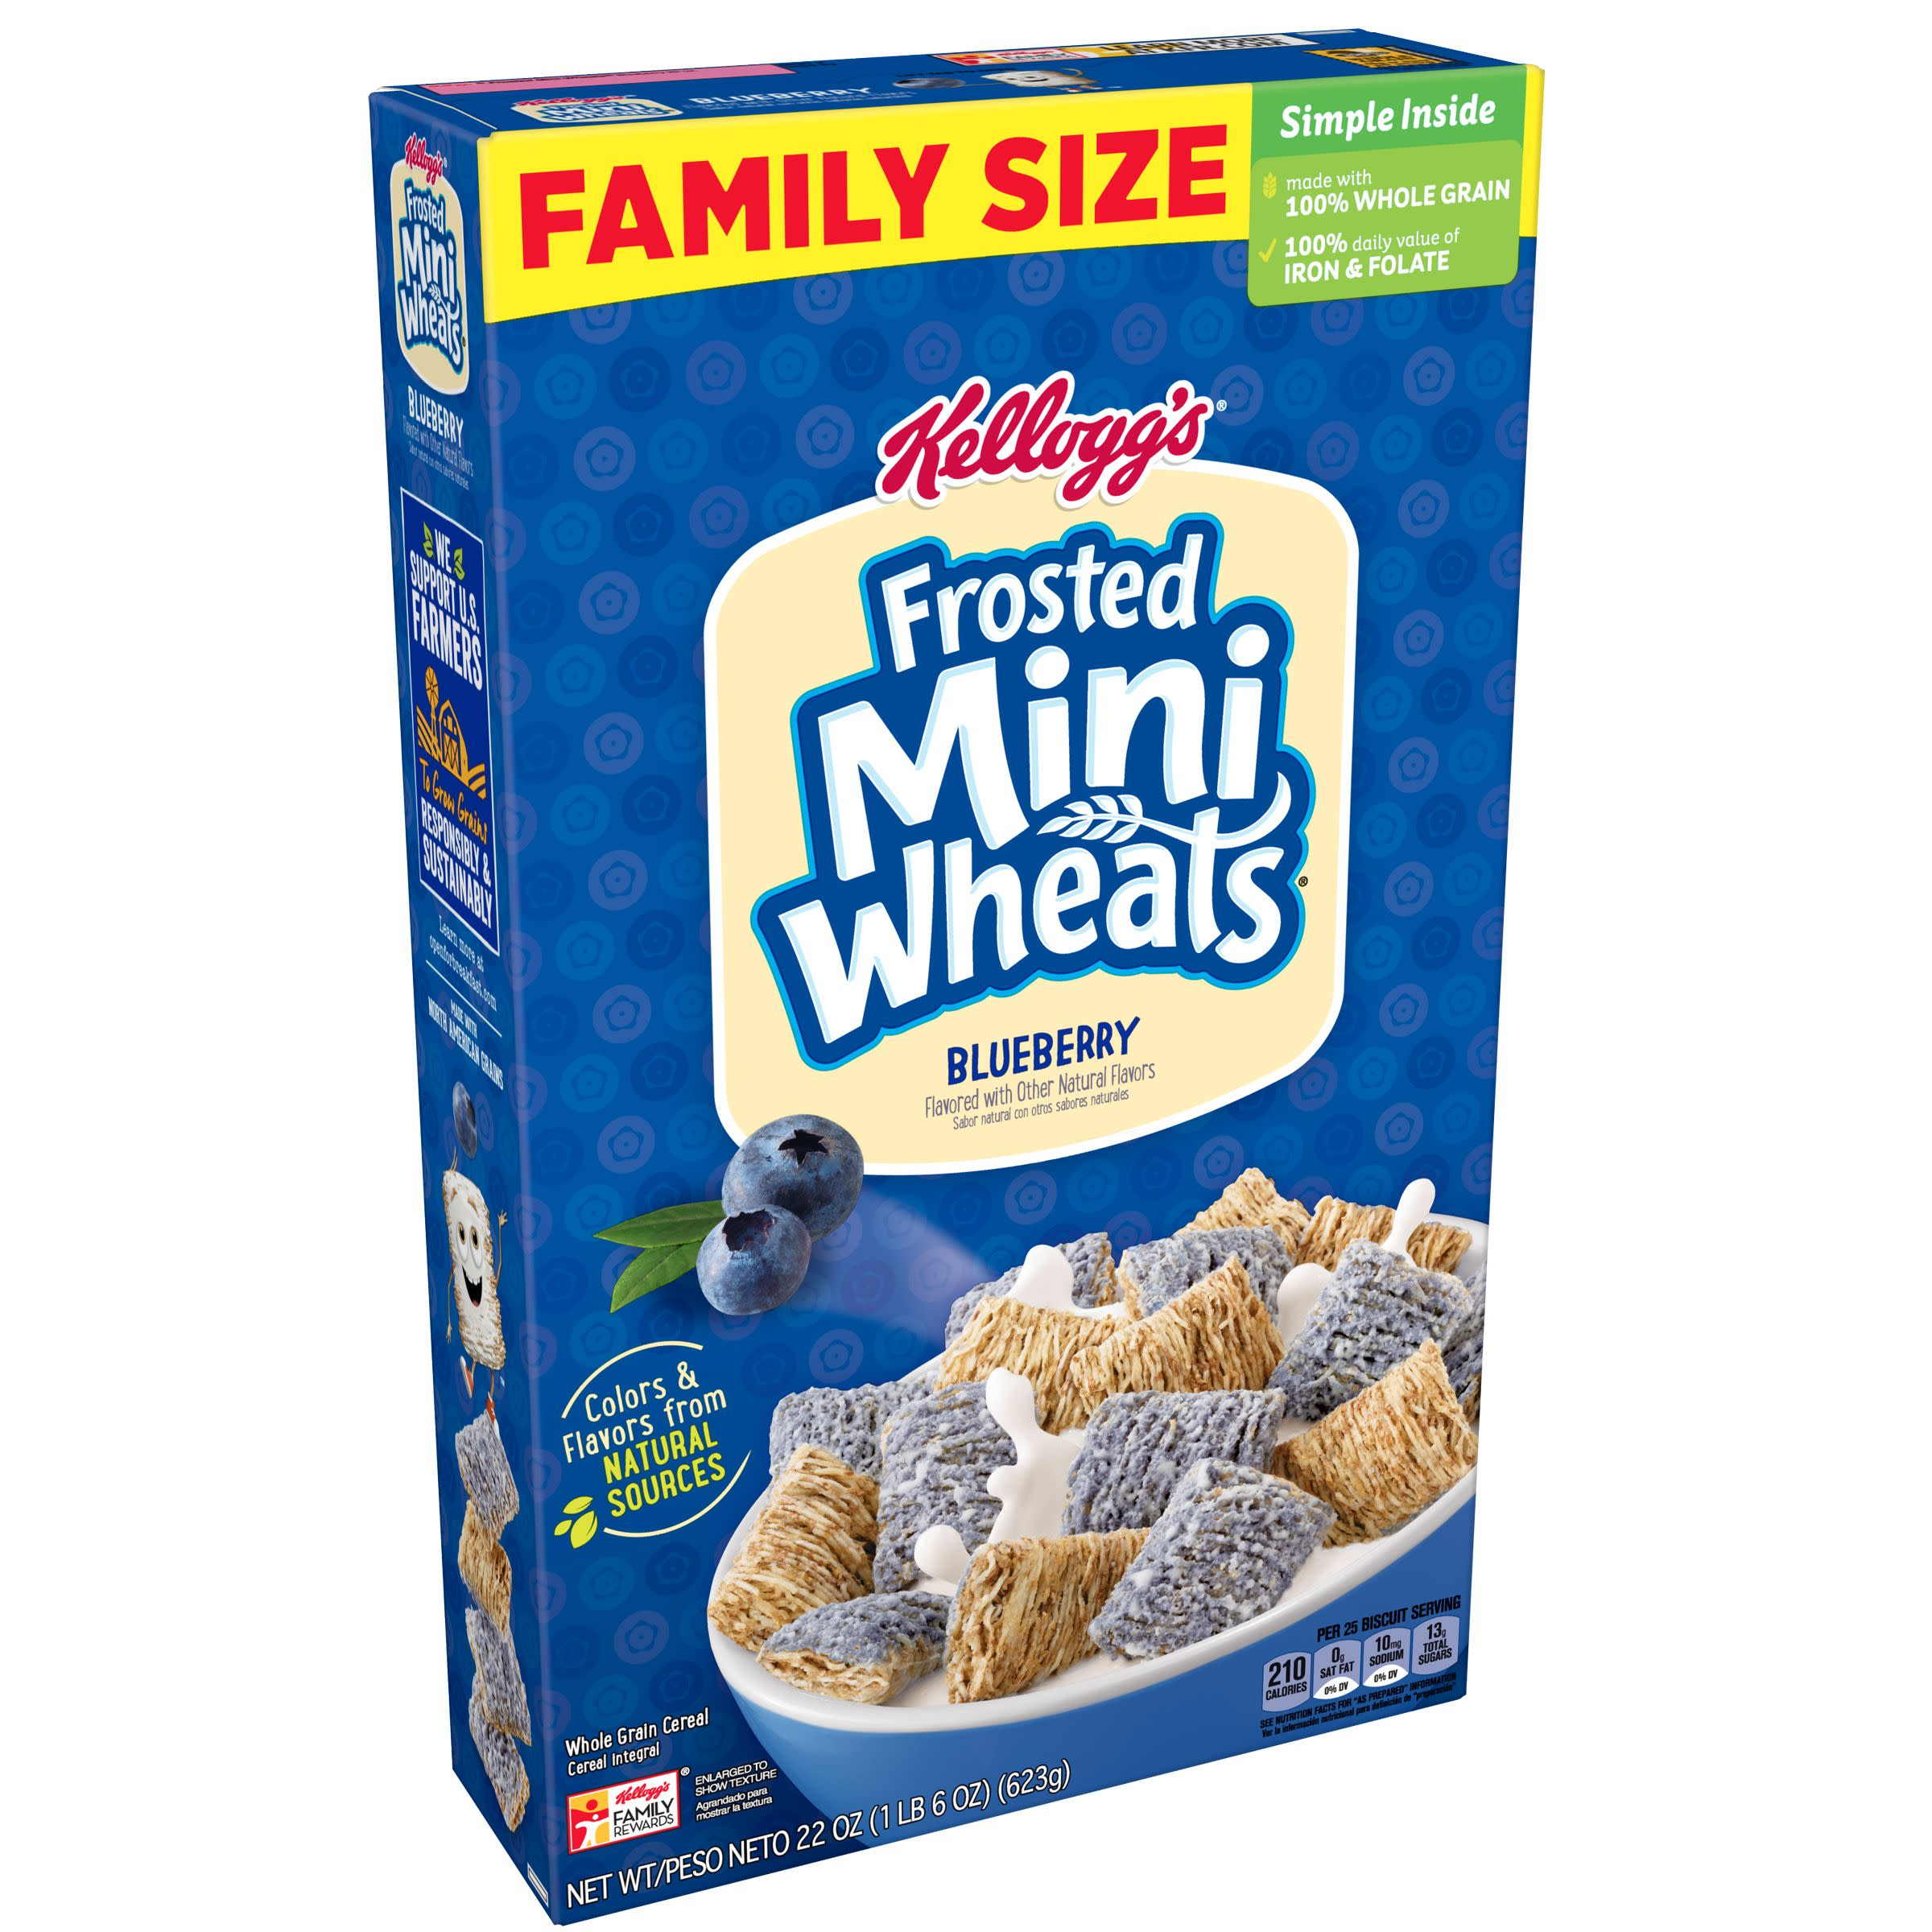 Kellogg's Blueberry Frosted Mini-Wheats Breakfast Cereal